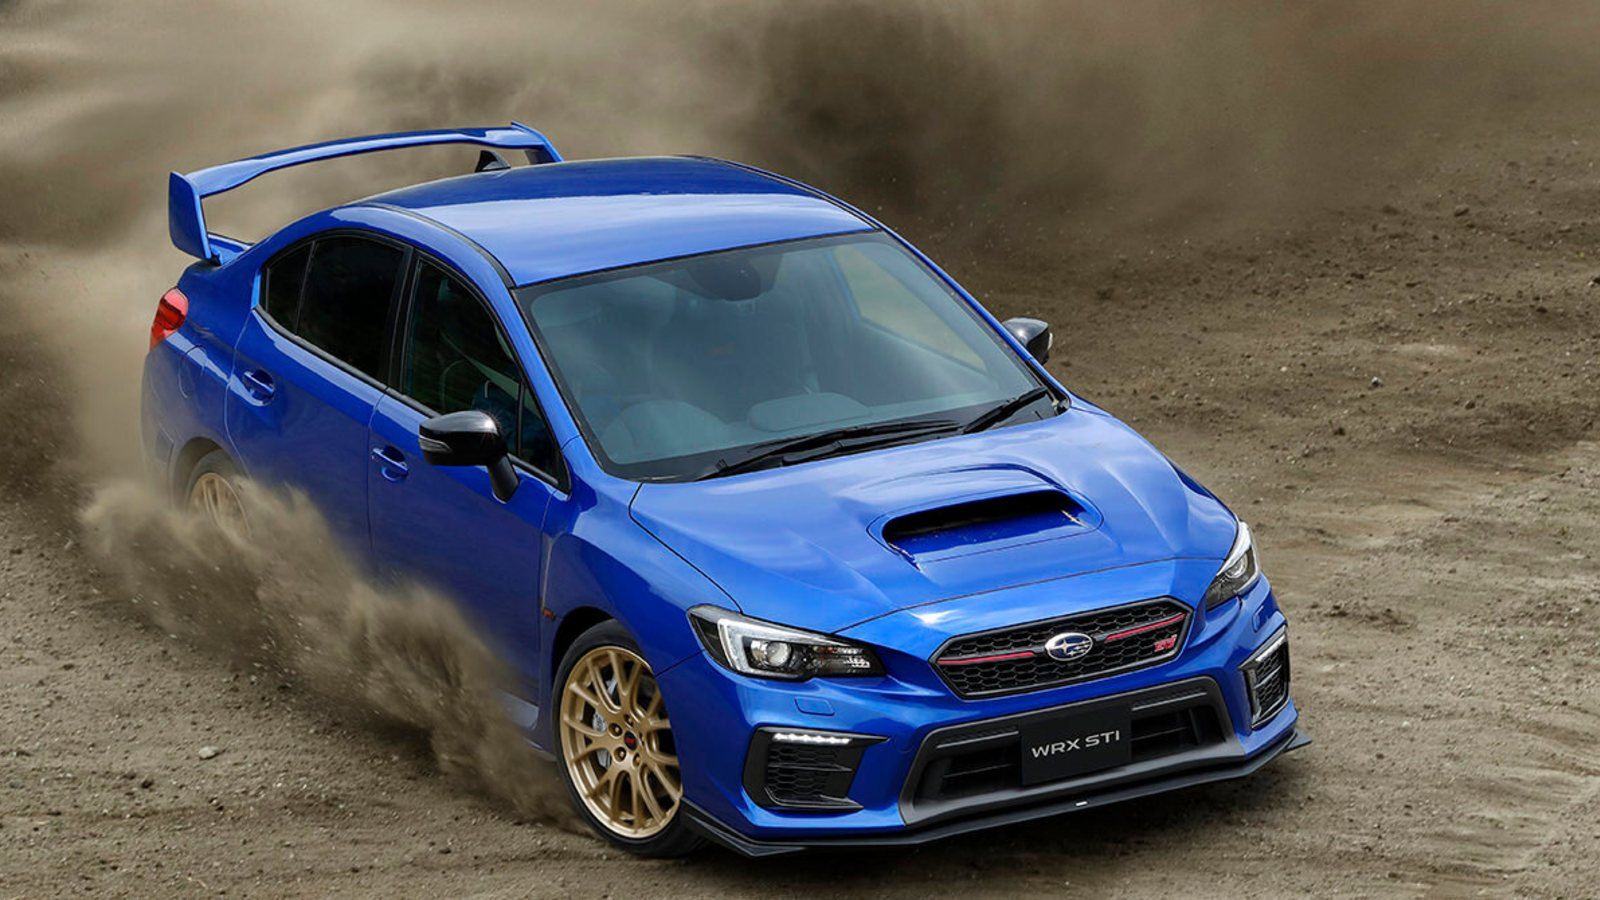 Subaru WRX STI 'EJ20 Final Edition' planned for Japan